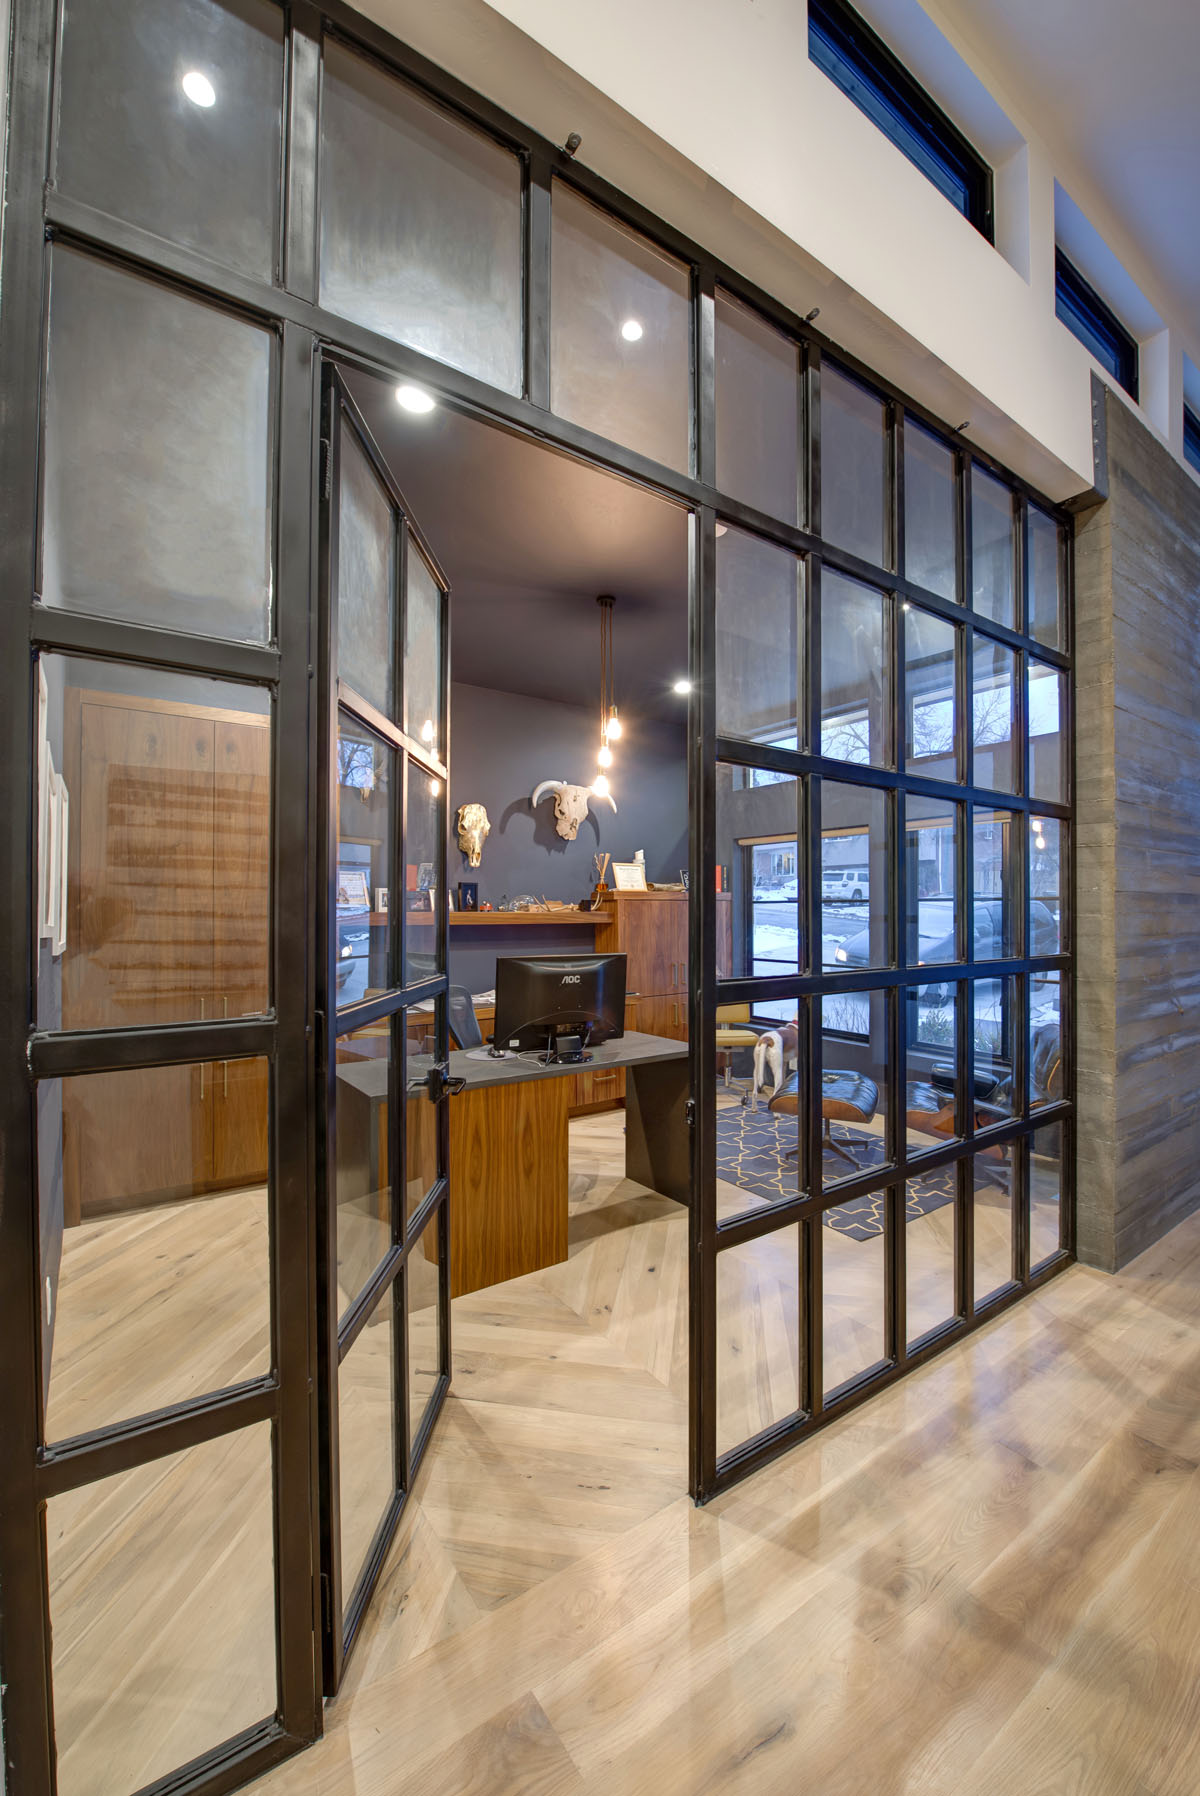 A home office with dark blue walls and ceiling and glass paneled wall and door in a modern residential design home.